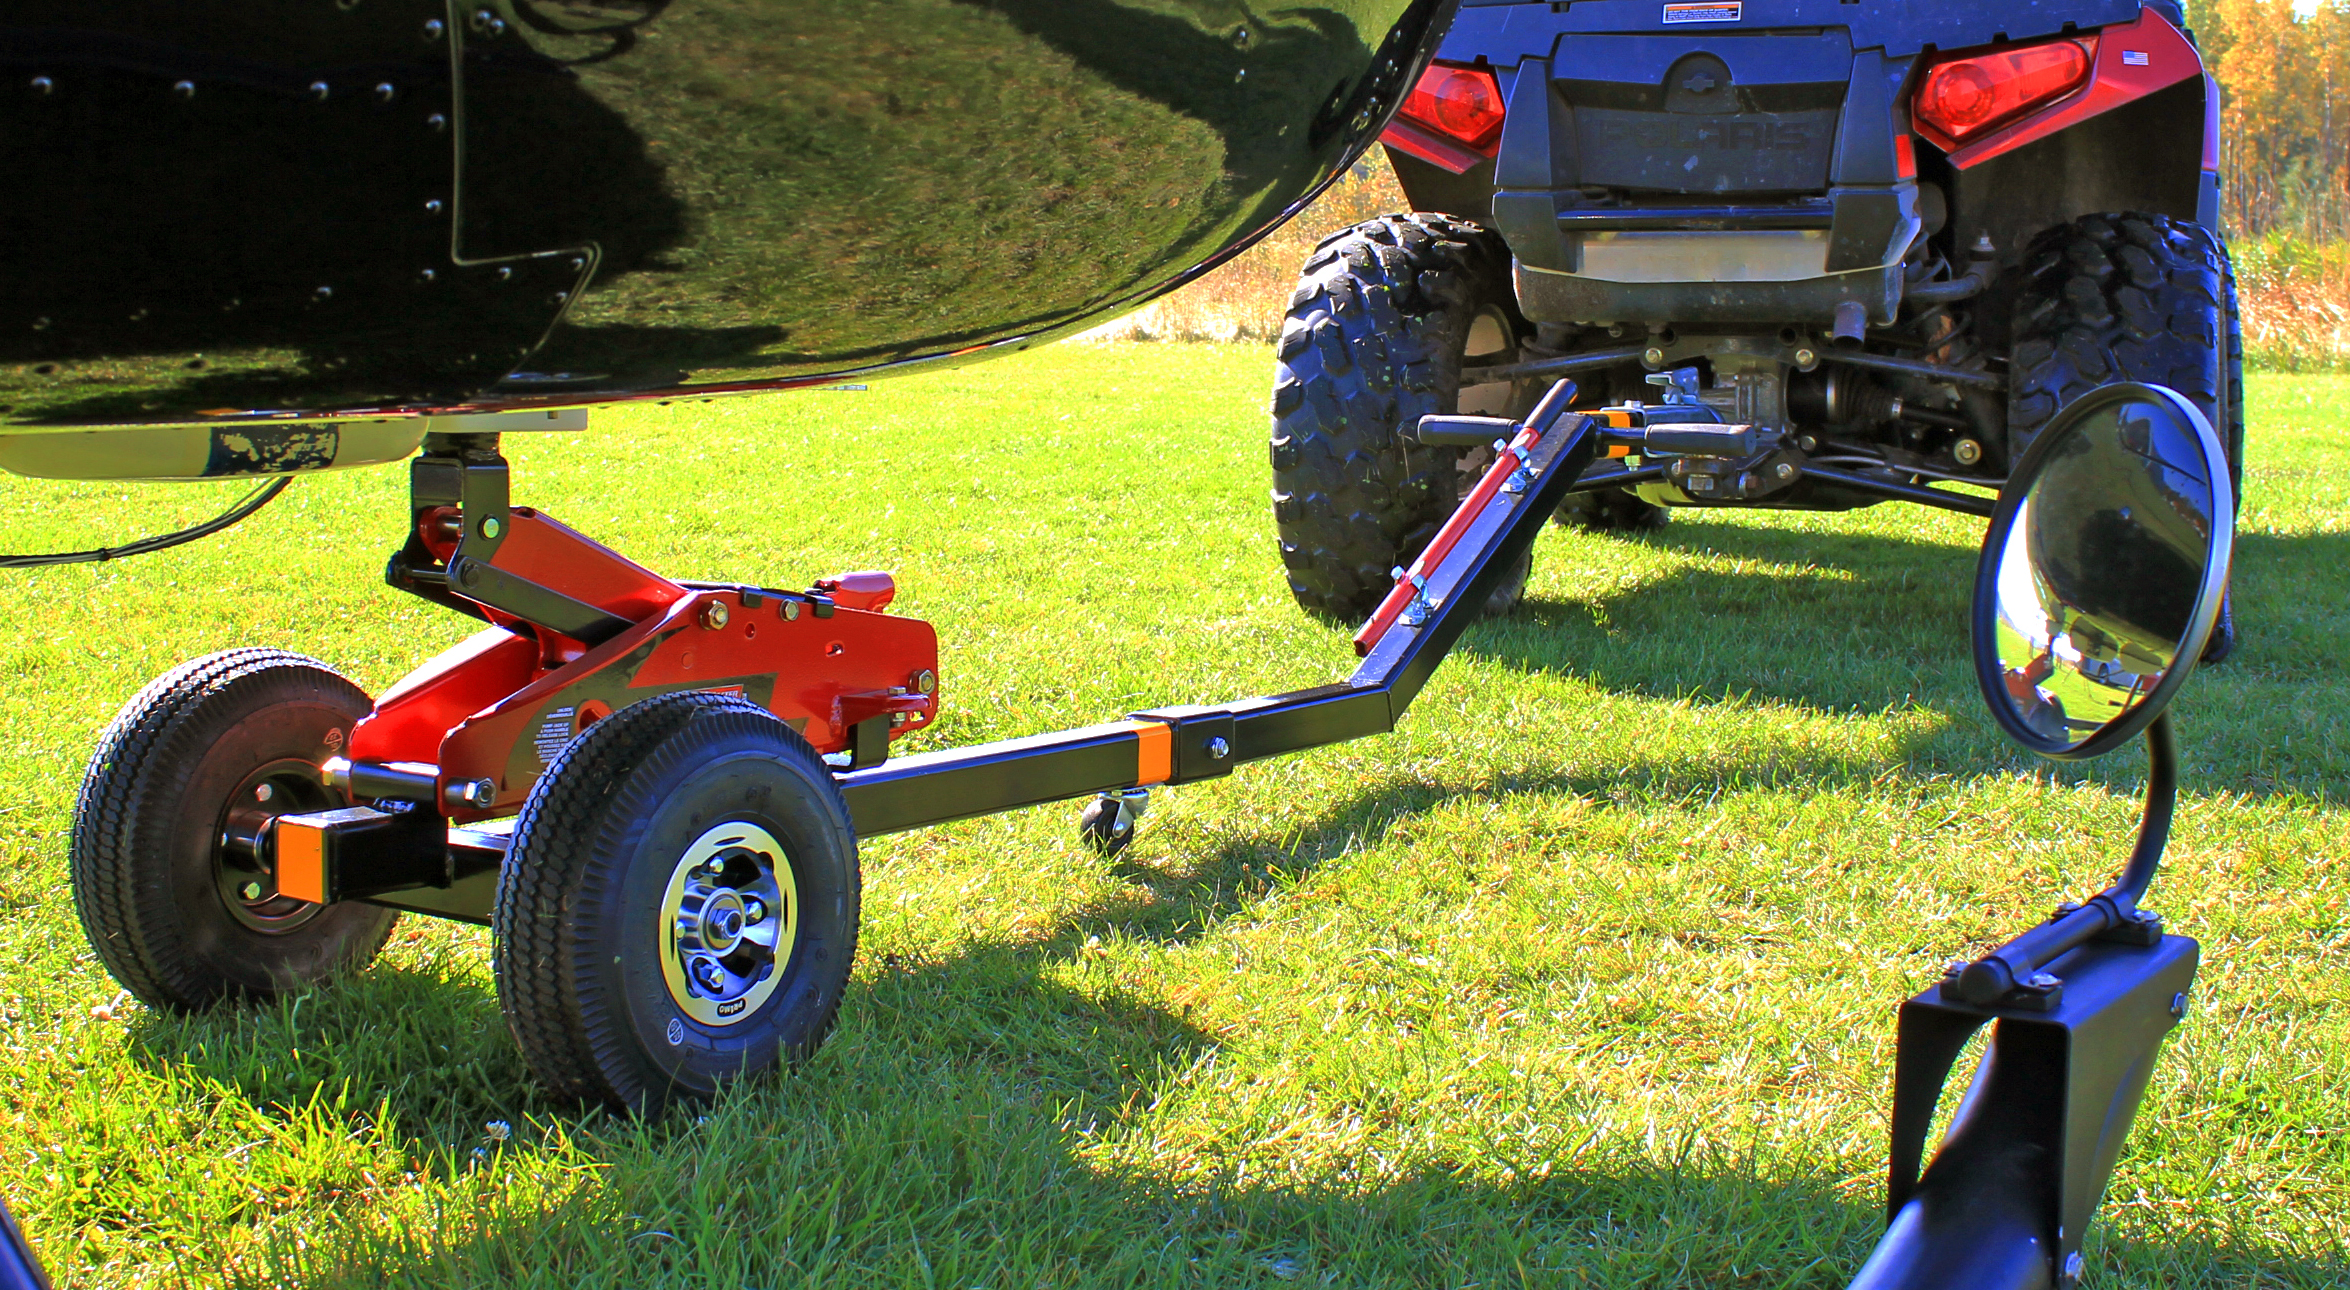 Robinson Towbar attached to R44 on grass